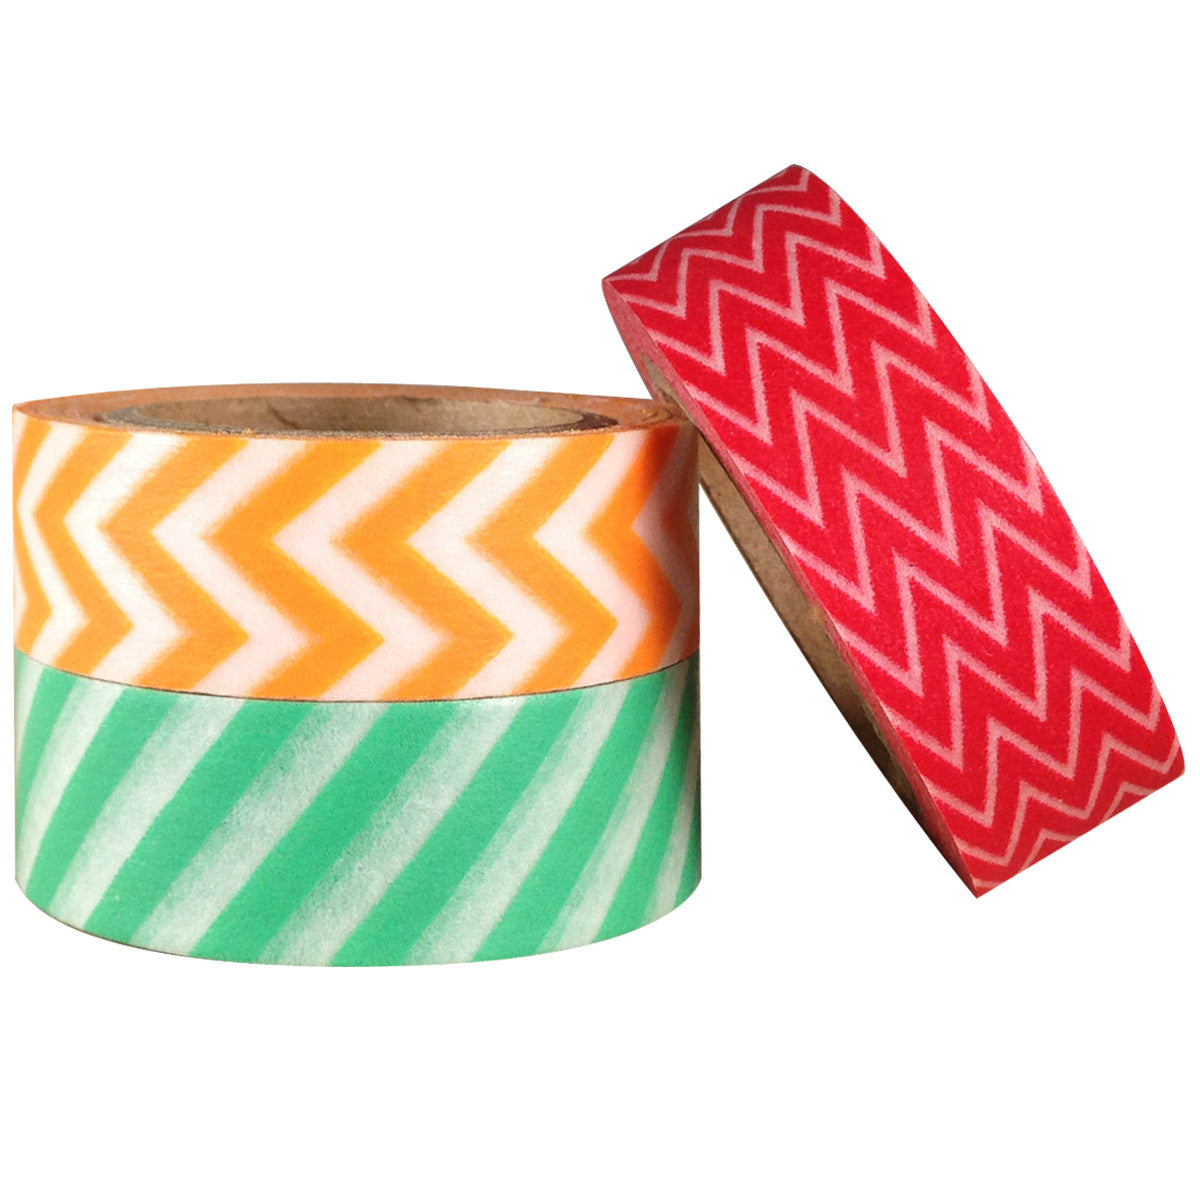 Wrapables Dazzle Me Japanese Washi Masking Tape (Set of 3)